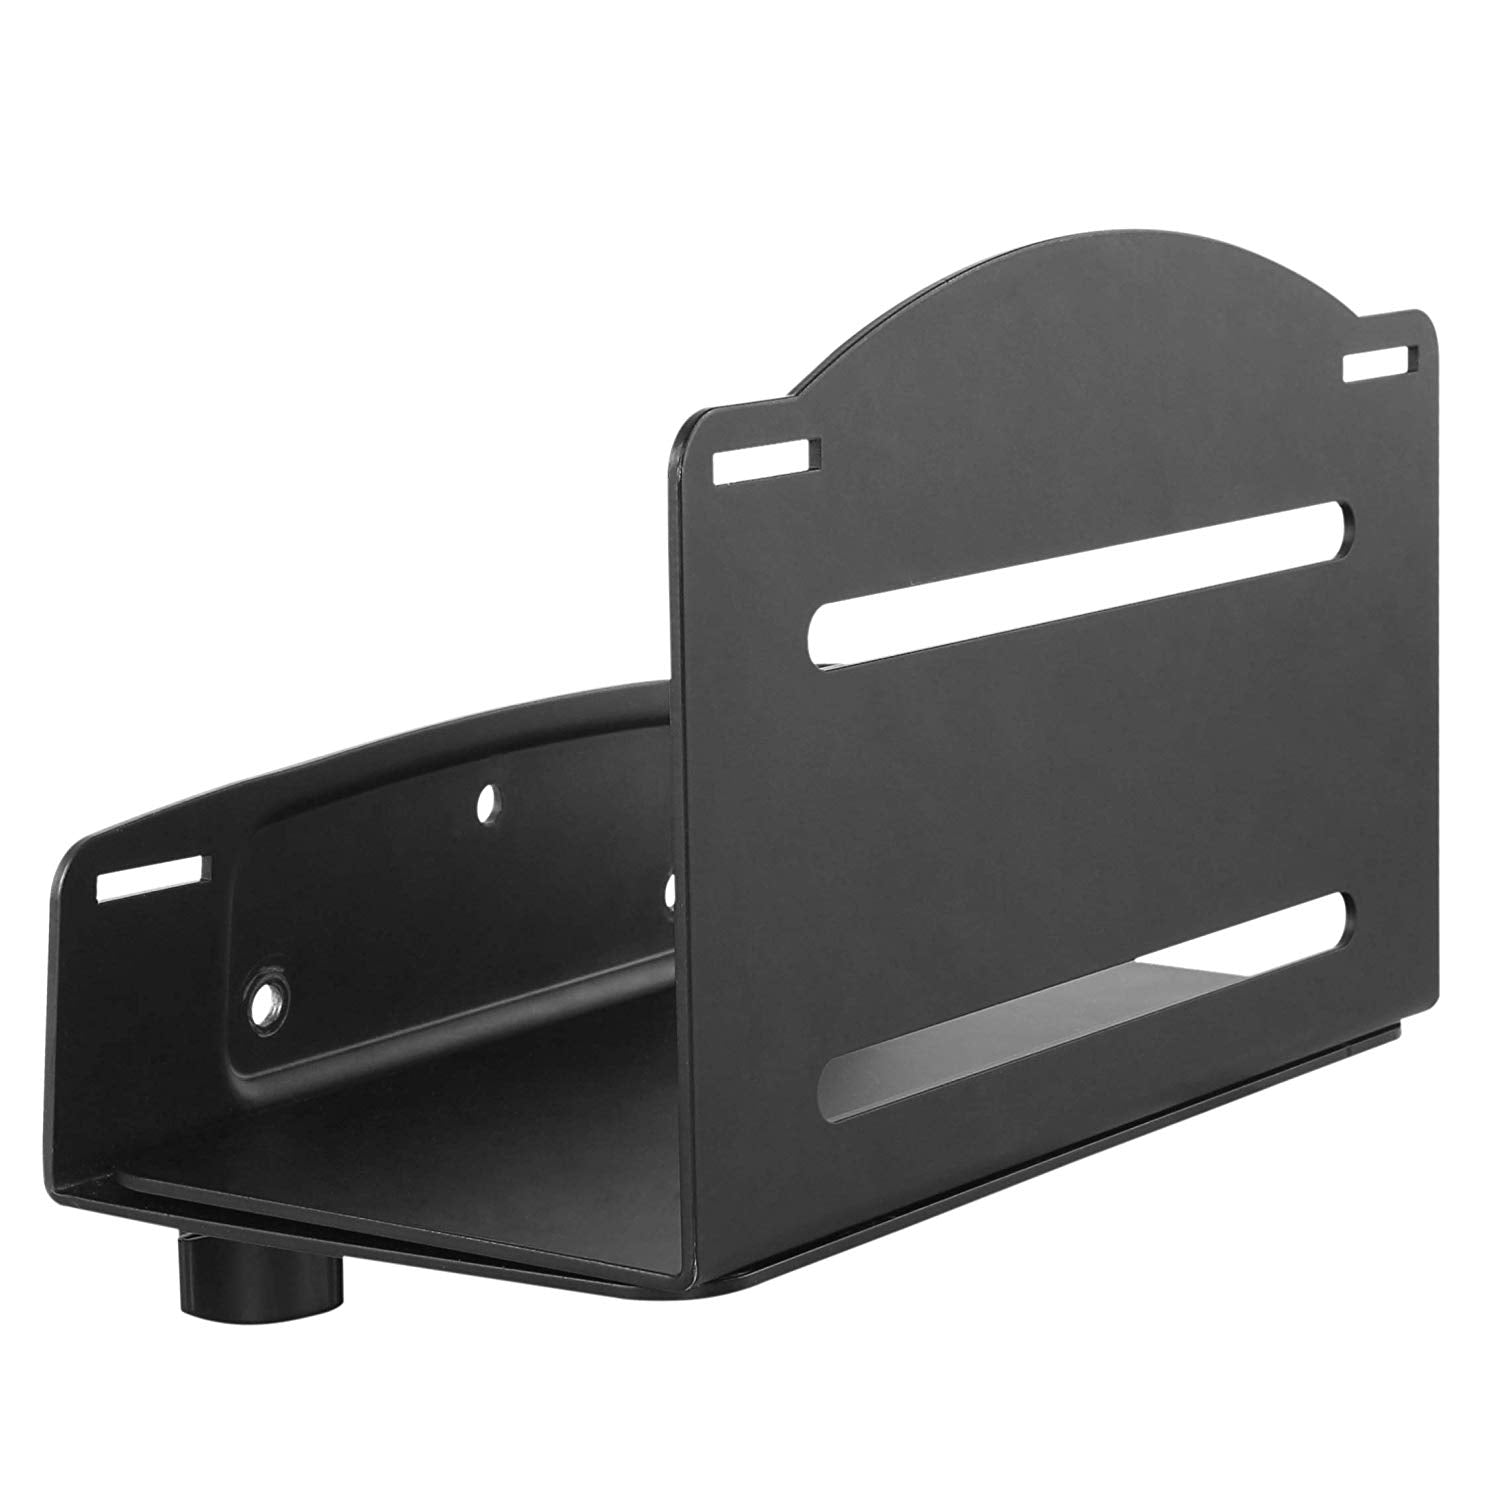 Computer Tower Wall Mount - Adjustable Bracket Fits Most Computer Cases